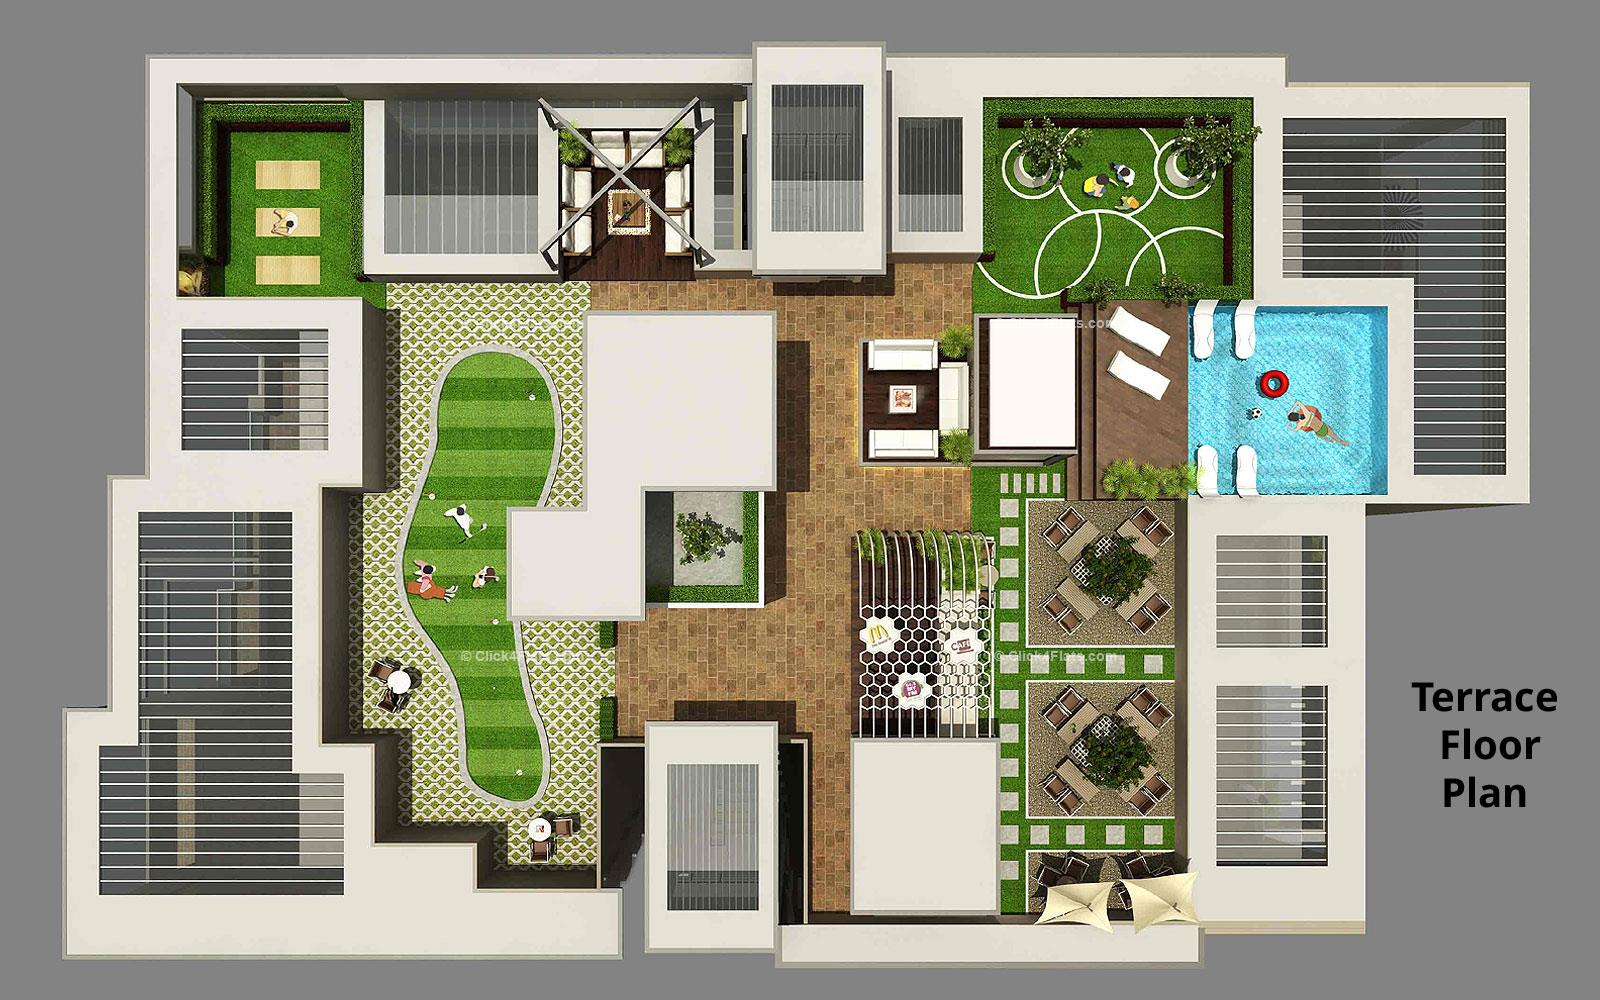 The Park Central Terrace Floor Plan